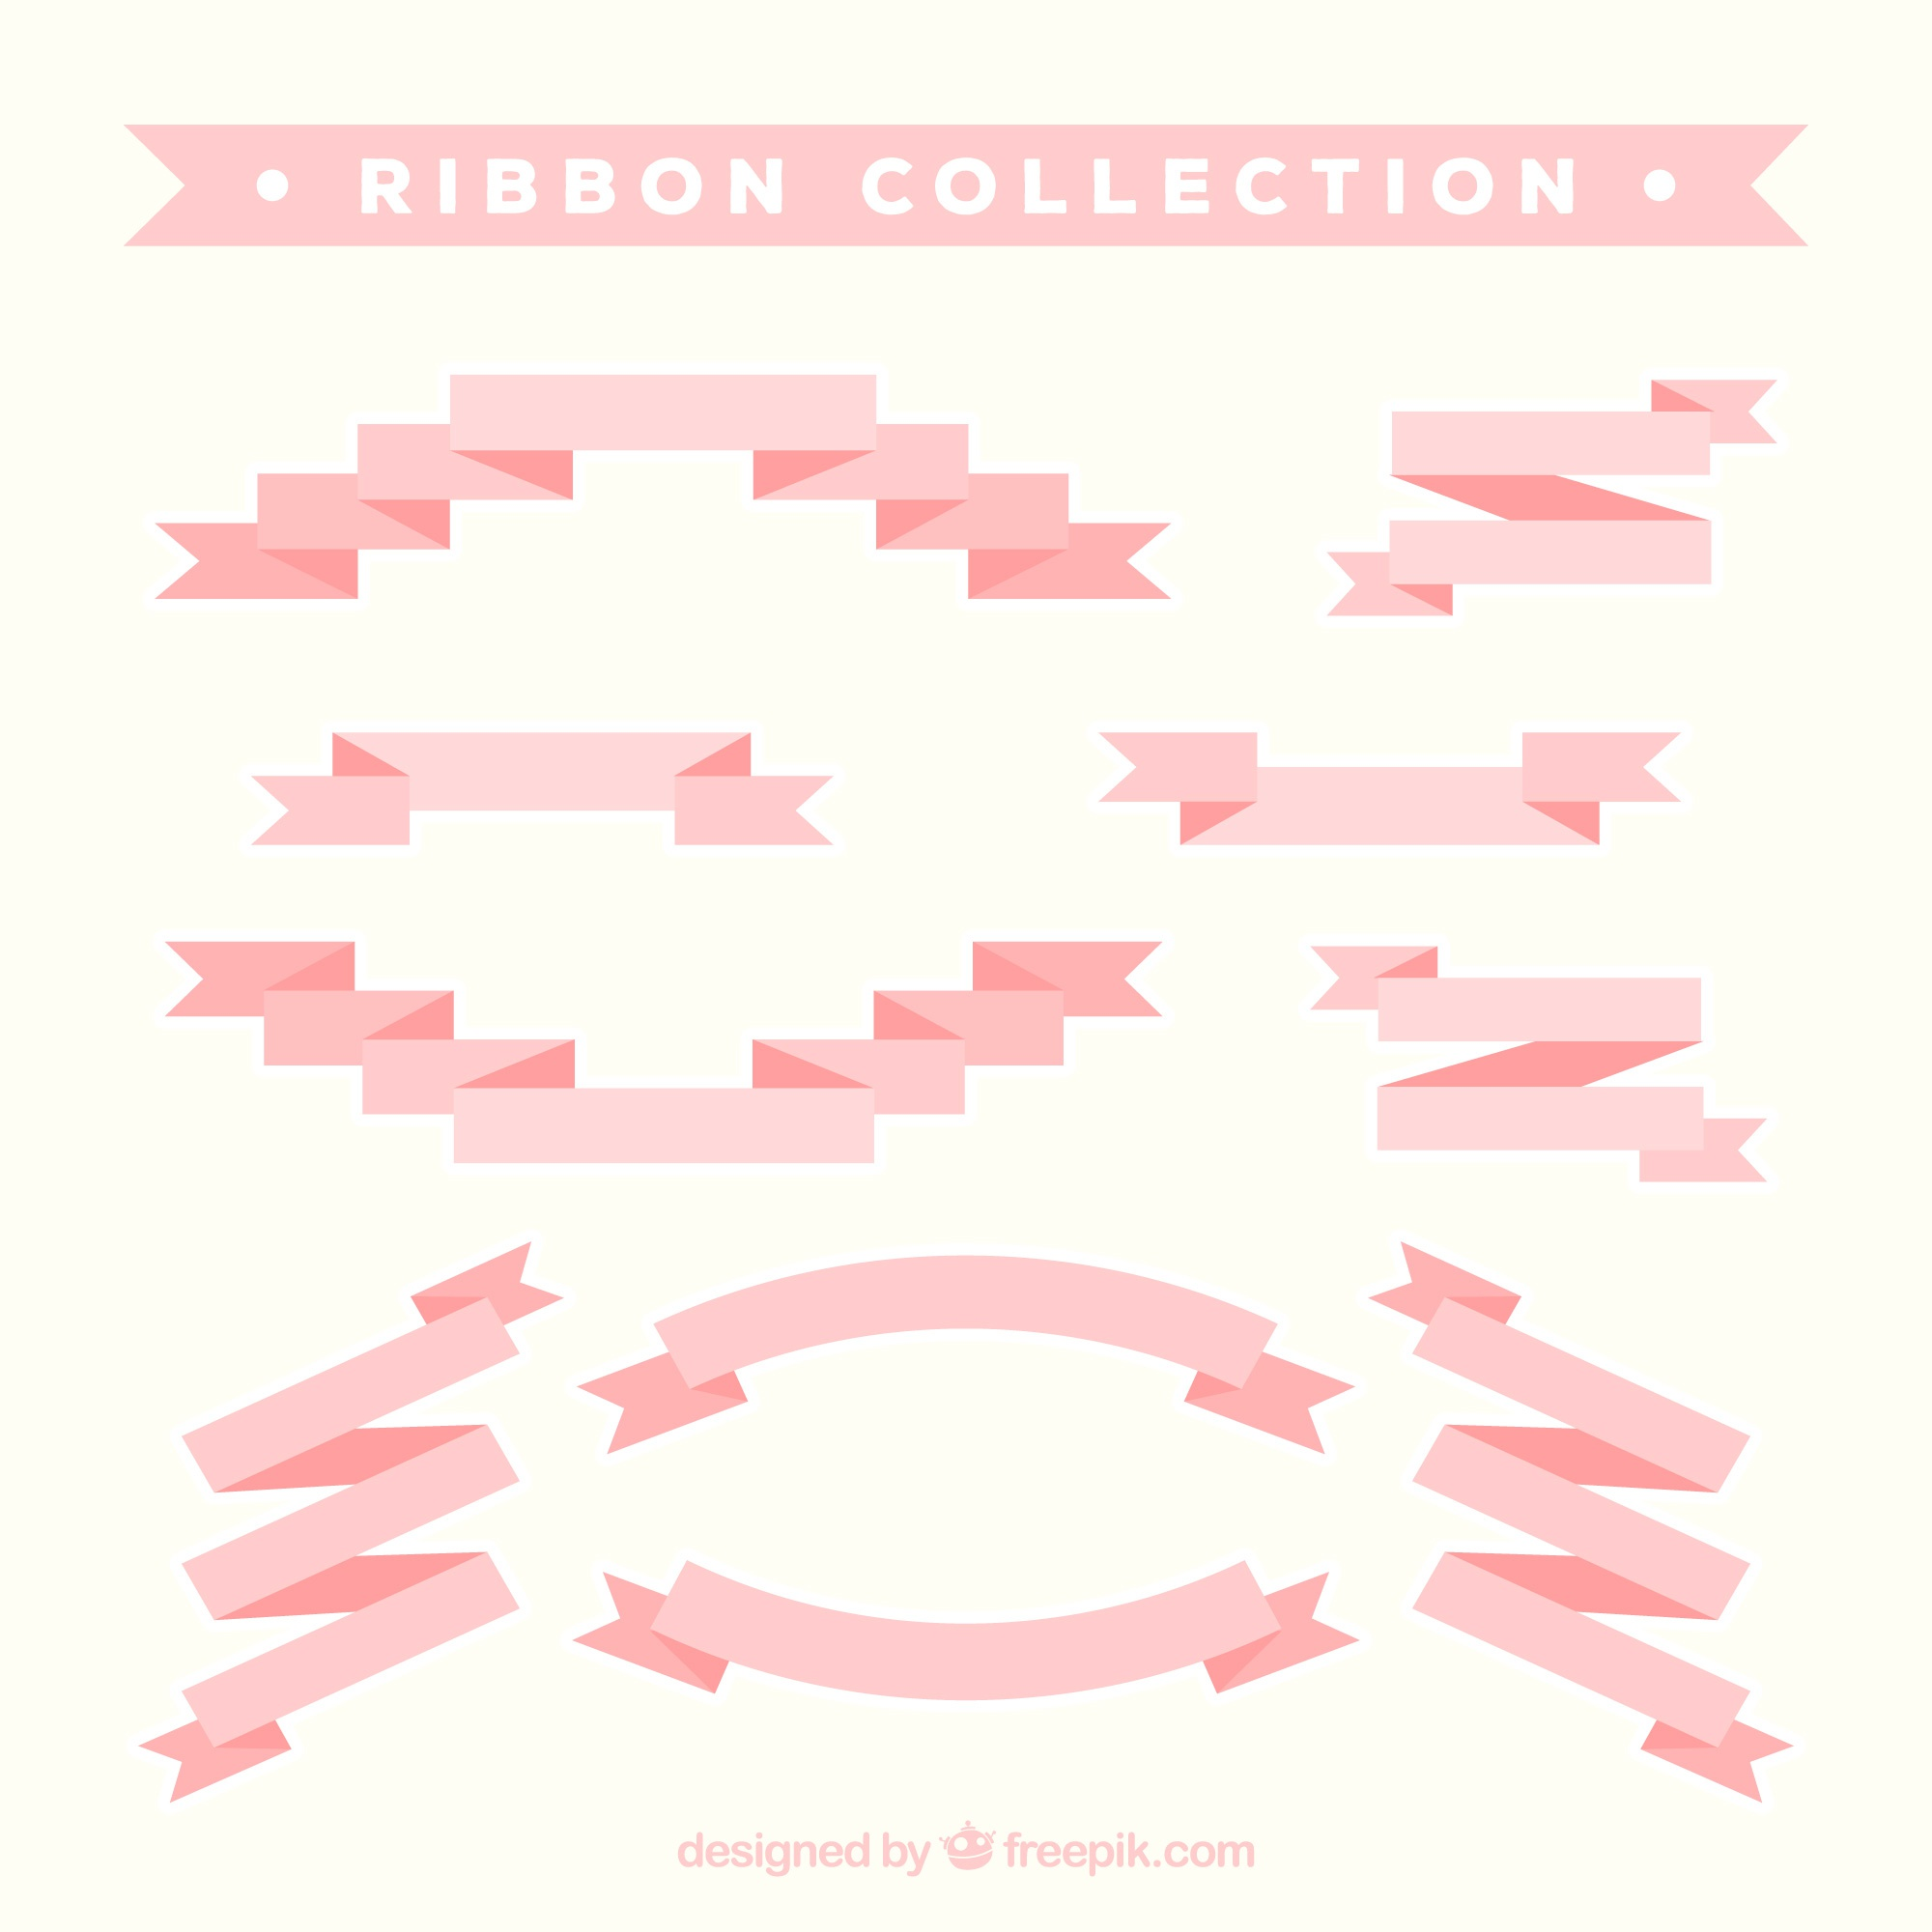 Great collection of pink ribbons in flat design